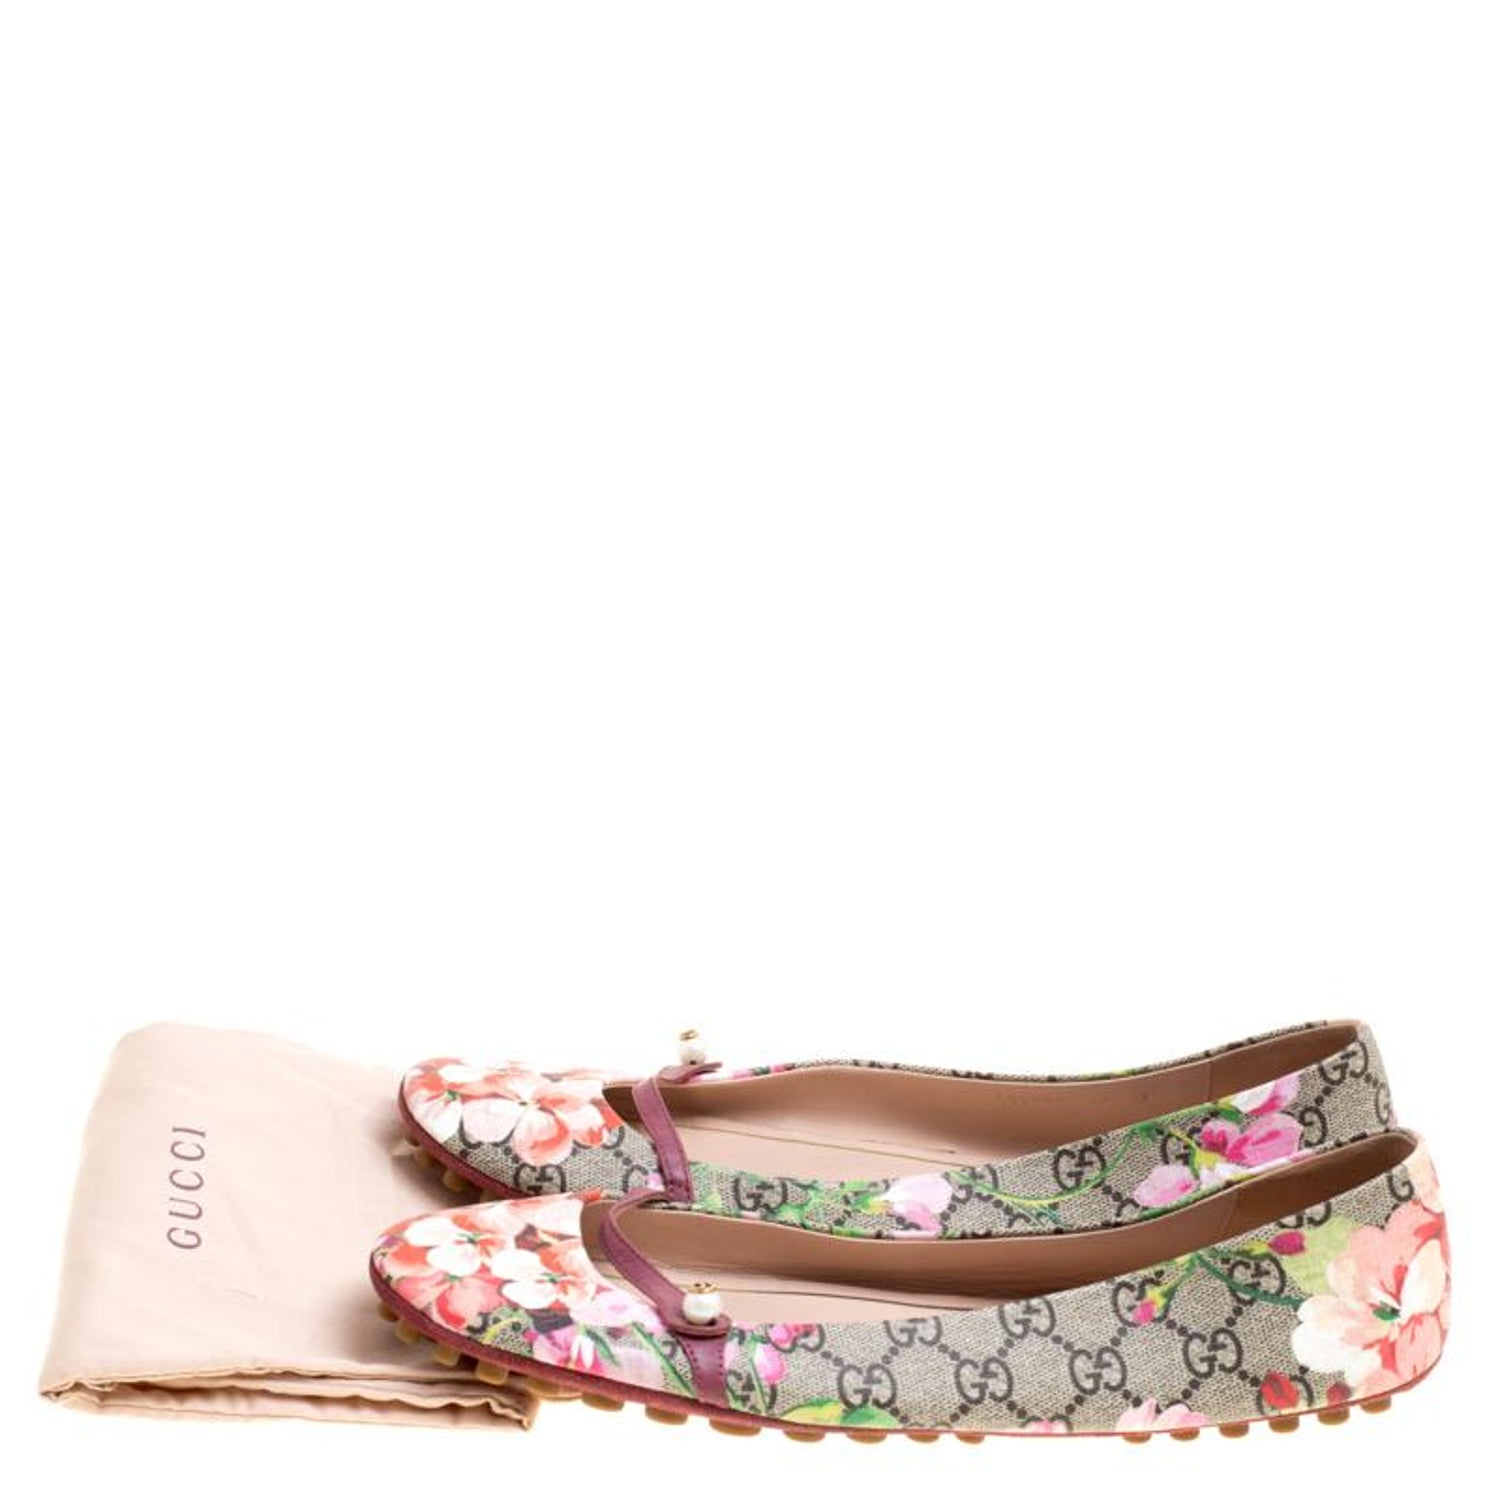 28fb806ea Gucci Biege GG Supreme Blooms Printed Canvas Ballet Flats Size 41 at 1stdibs